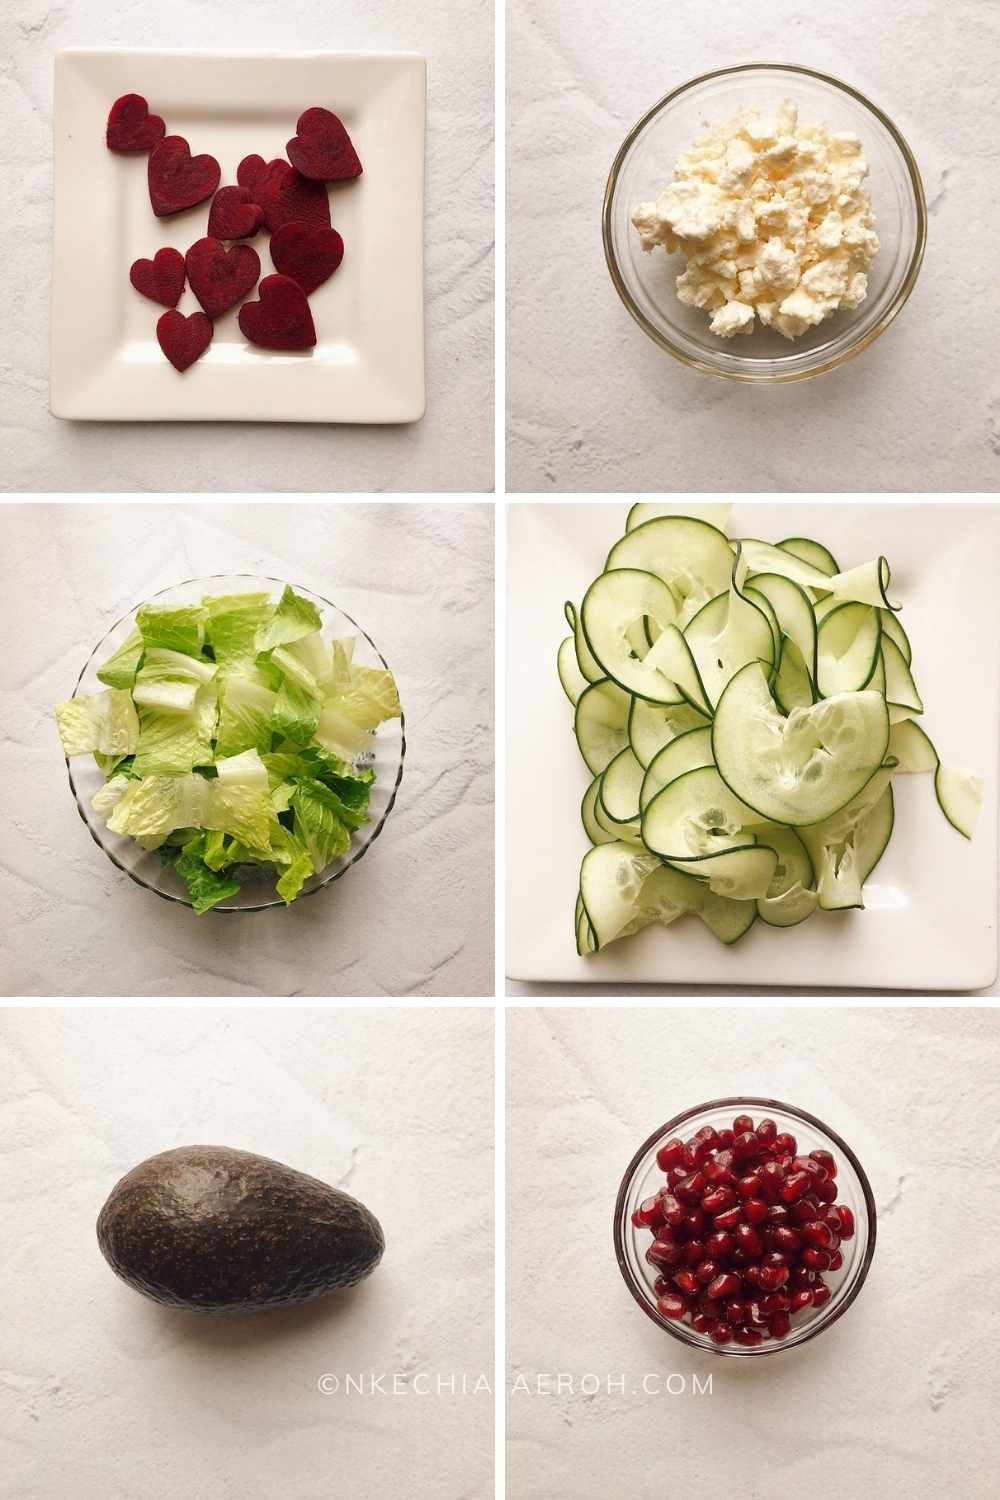 The ingredients for making this beet feta cheese salad include beetroot aka beet, feta cheese, lettuce, cucumber, avocado, and salmon. As if these weren't enough, I topped our beetroot and feta cheese salad with pomegranate seeds to make for an even more delicious and eye-catching heart-healthy salad.